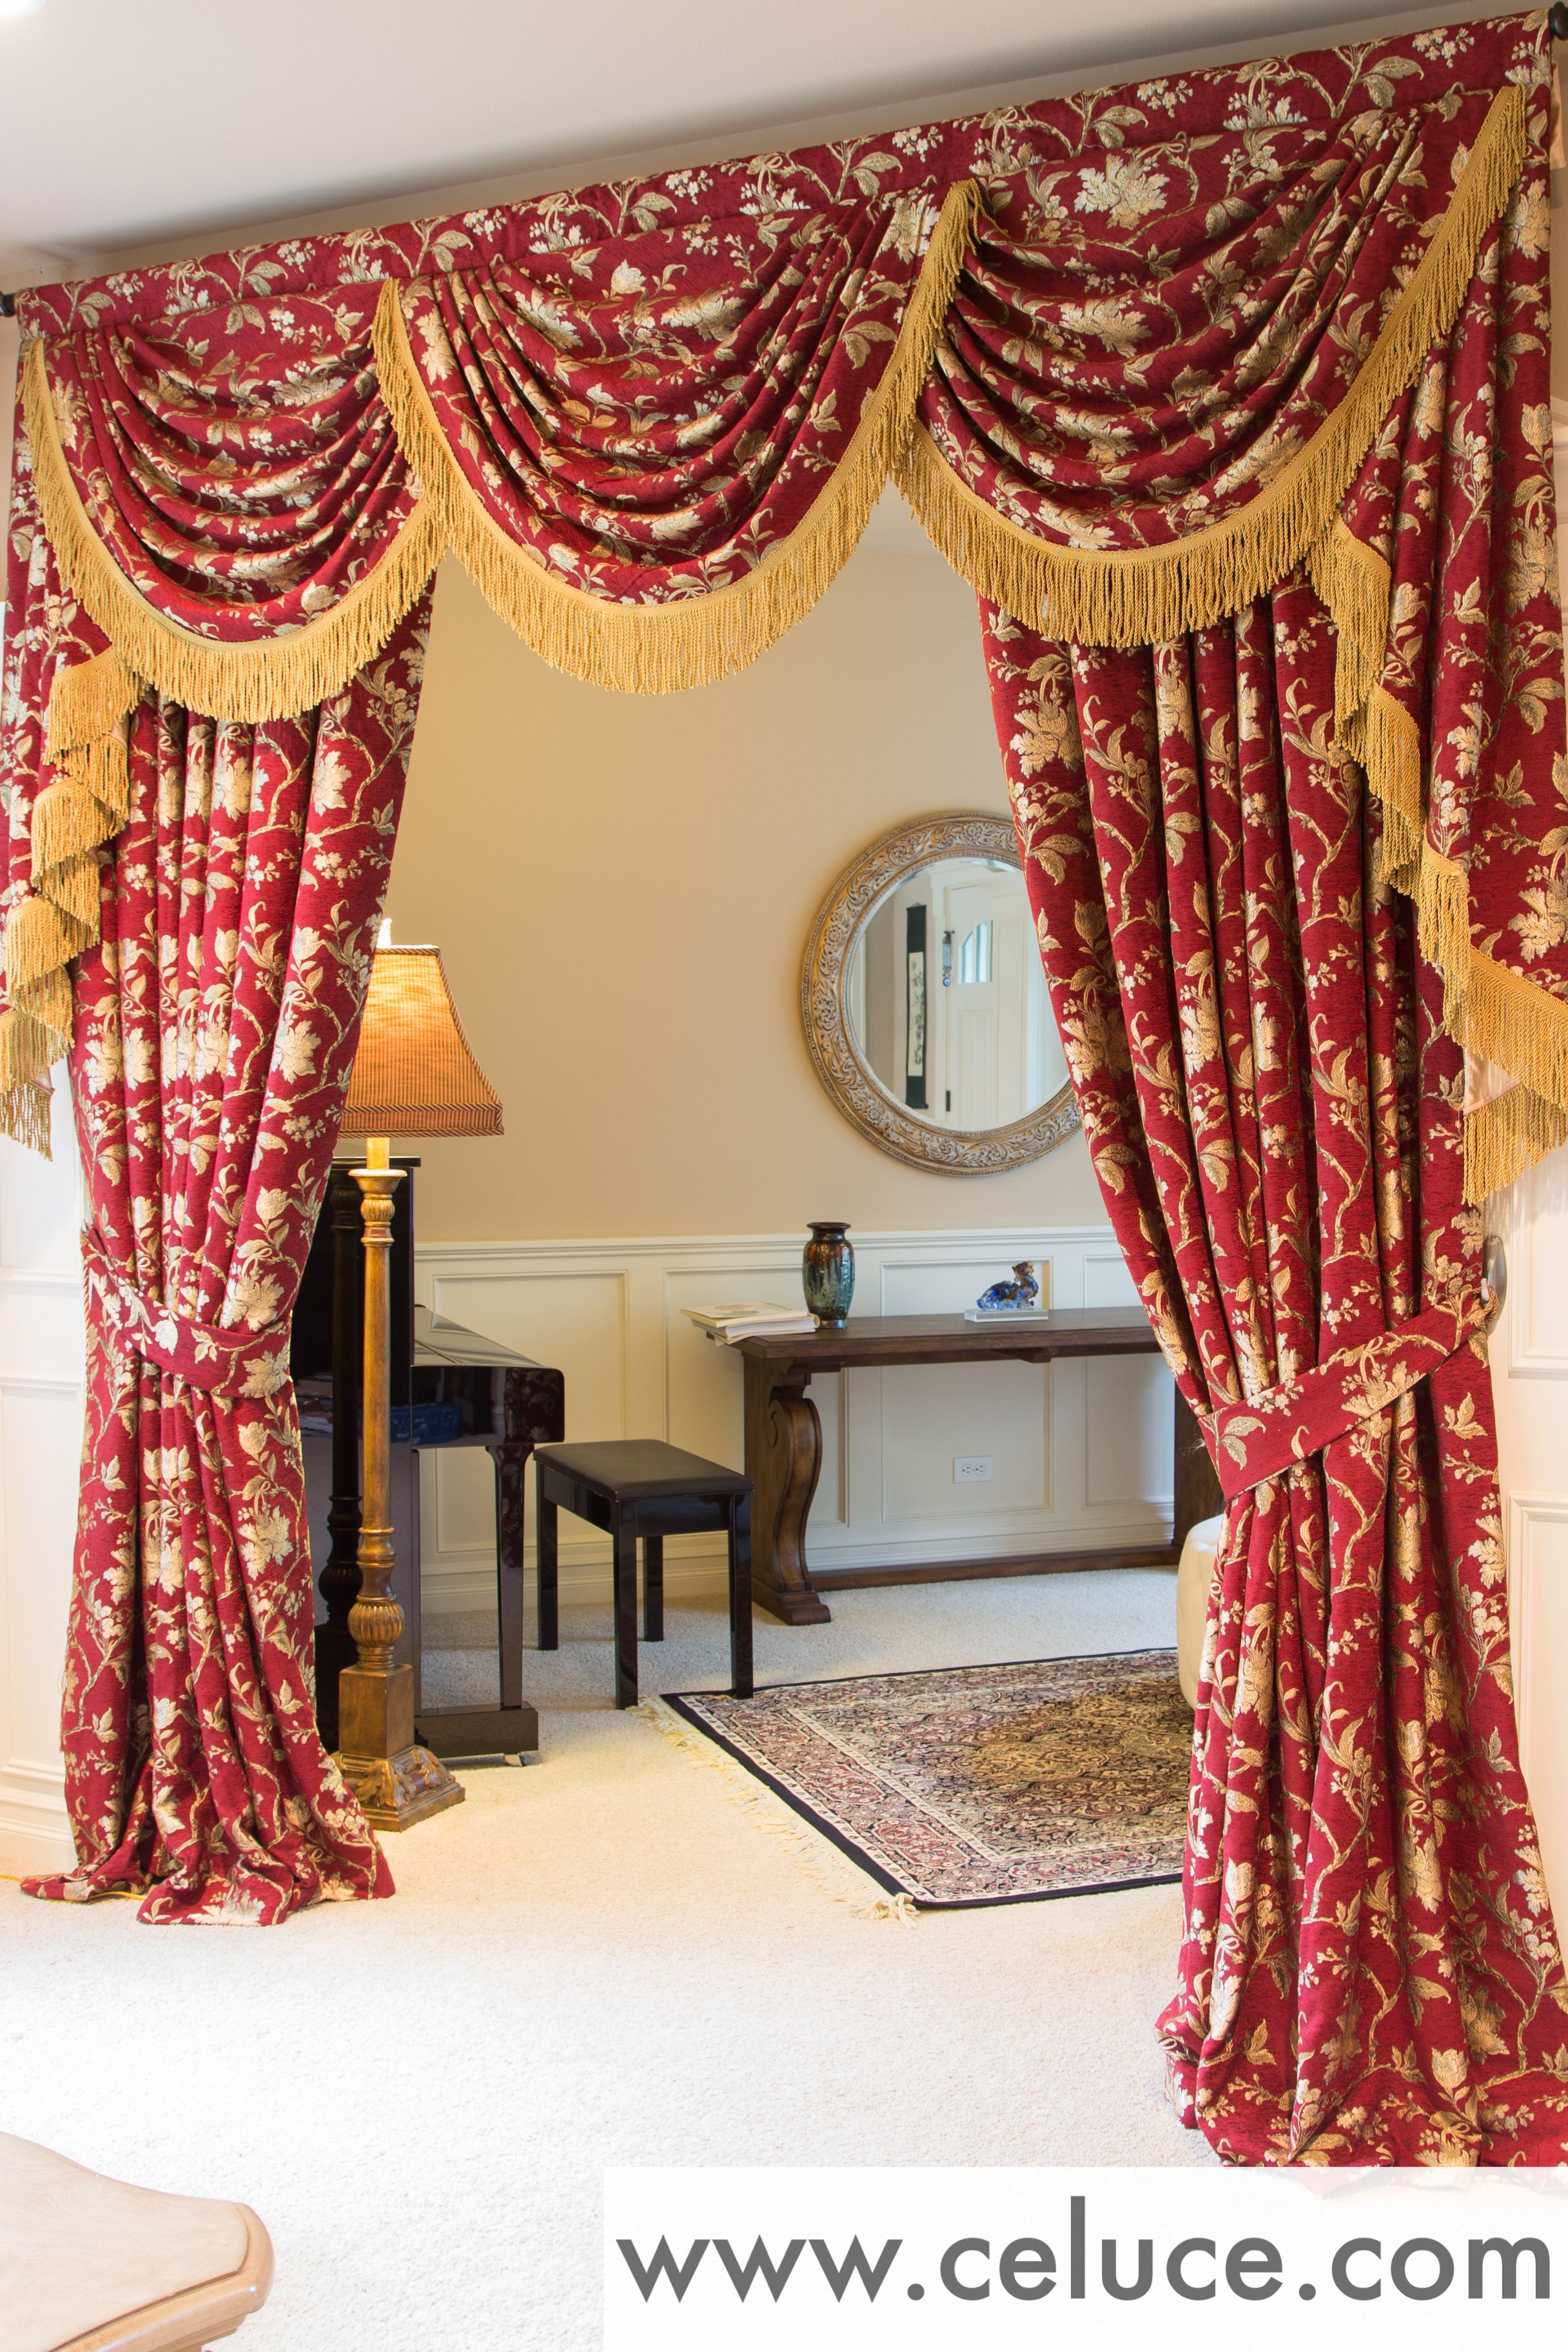 Www Celuce Com Customize Curtains Online Swag Valance Victorian Style Elegant Curtains Curtains Custom Curtains